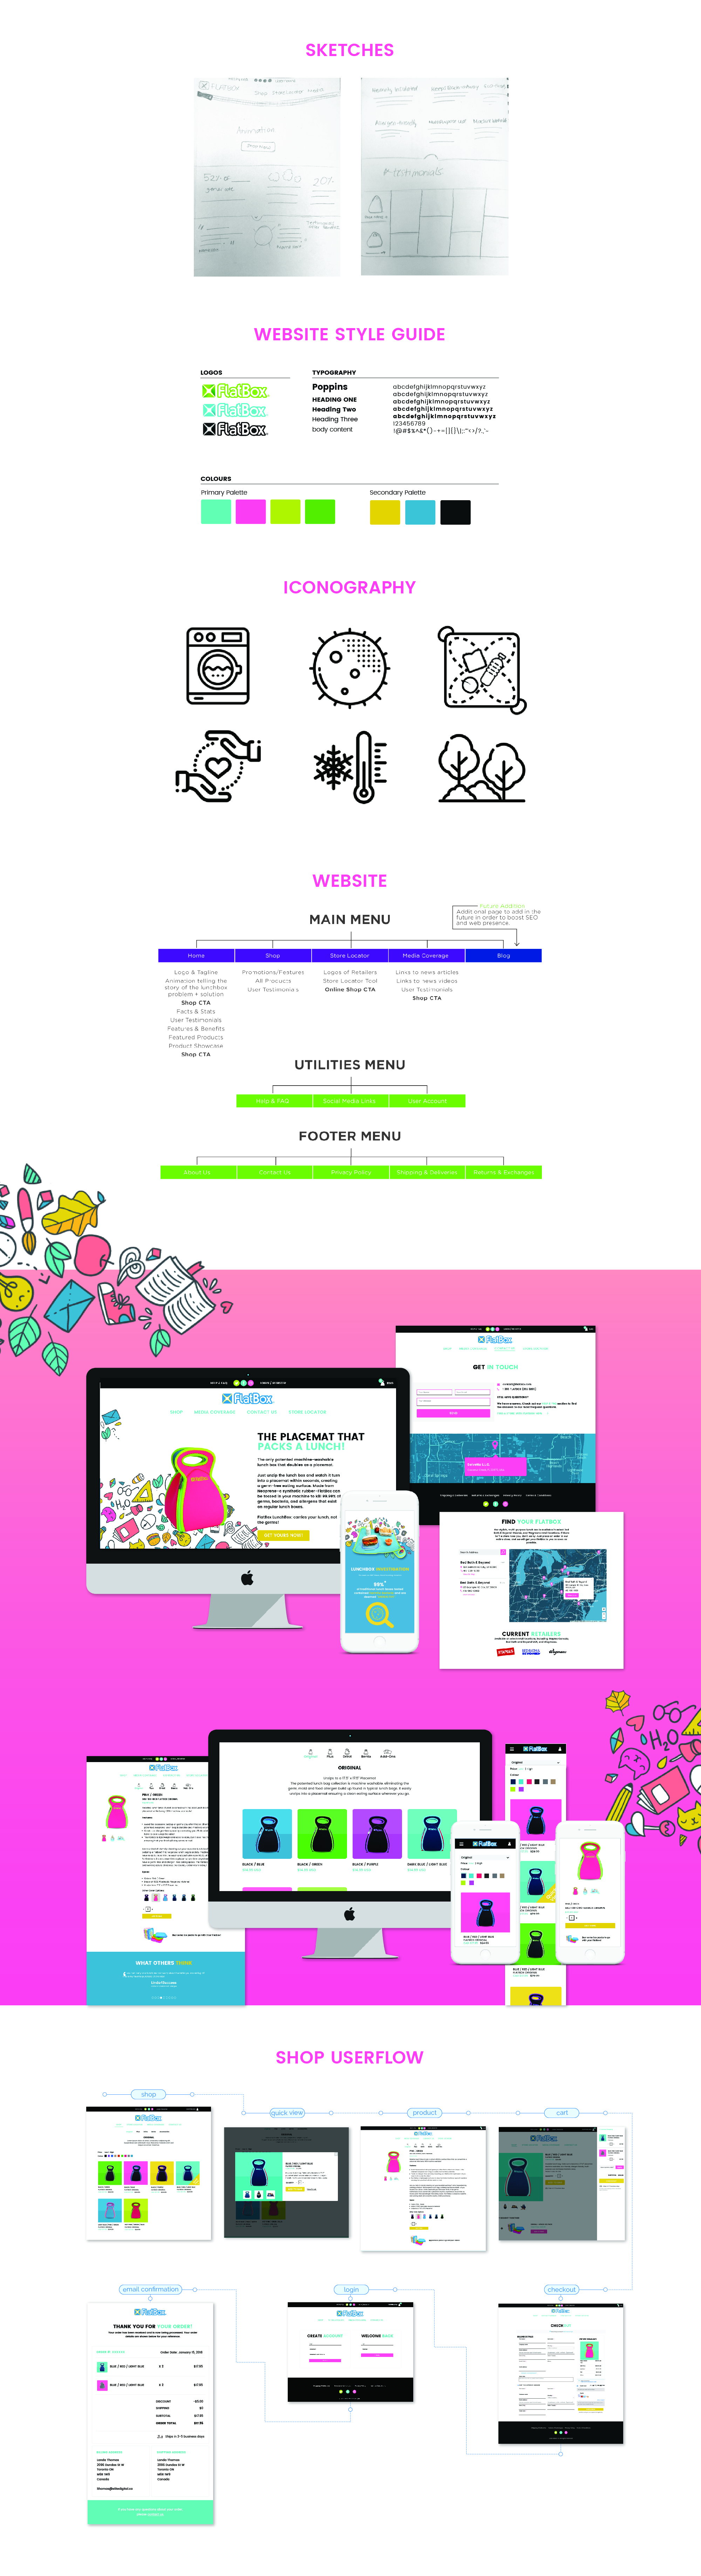 Flatbox website design